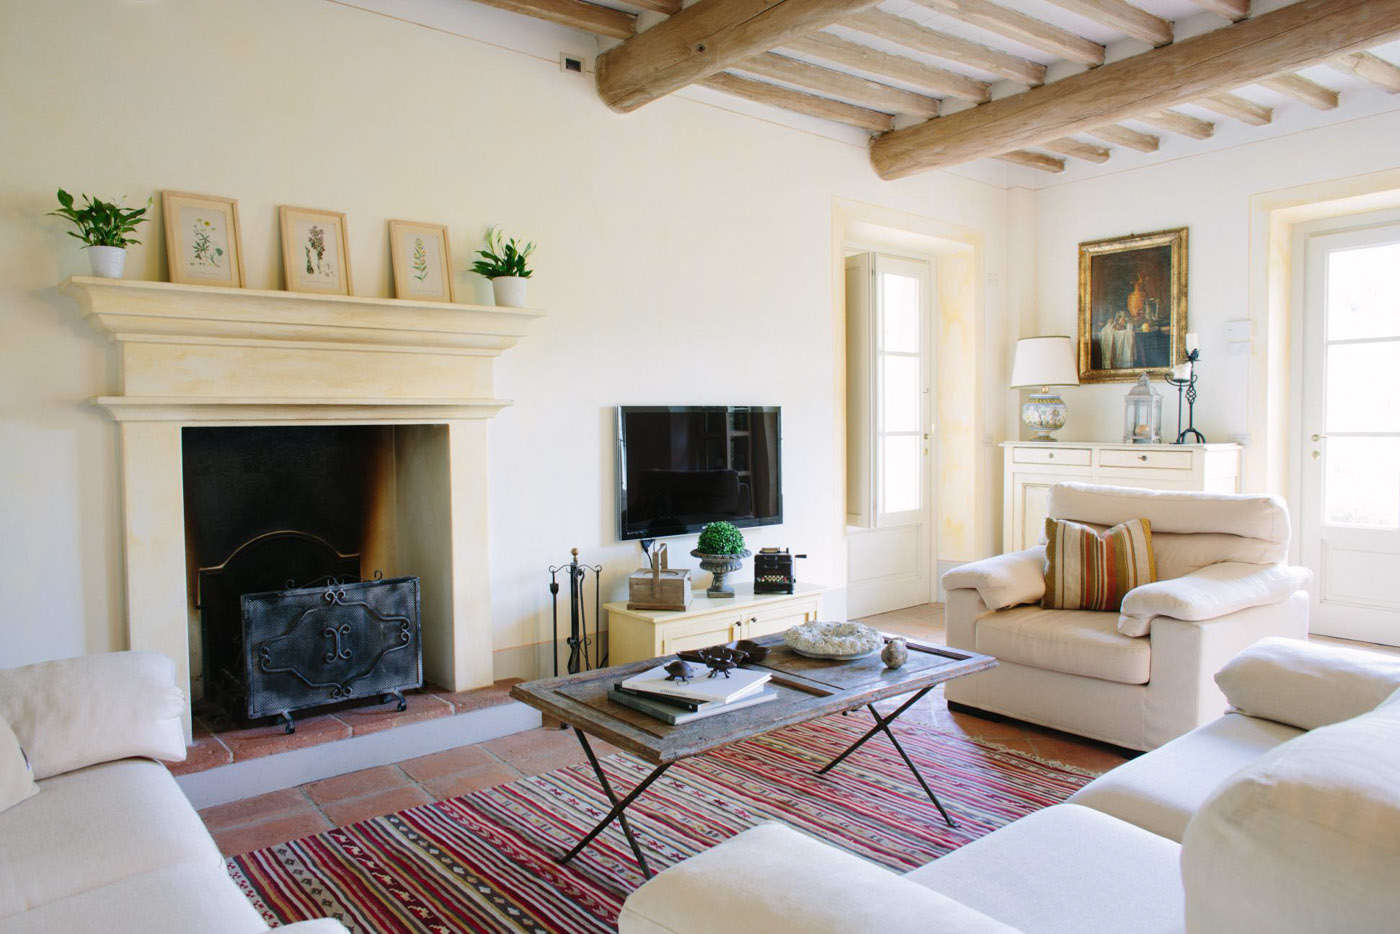 Luxury vacation rentals europe - Italy - Tuscany - Lucca - Rica - Image 1/15